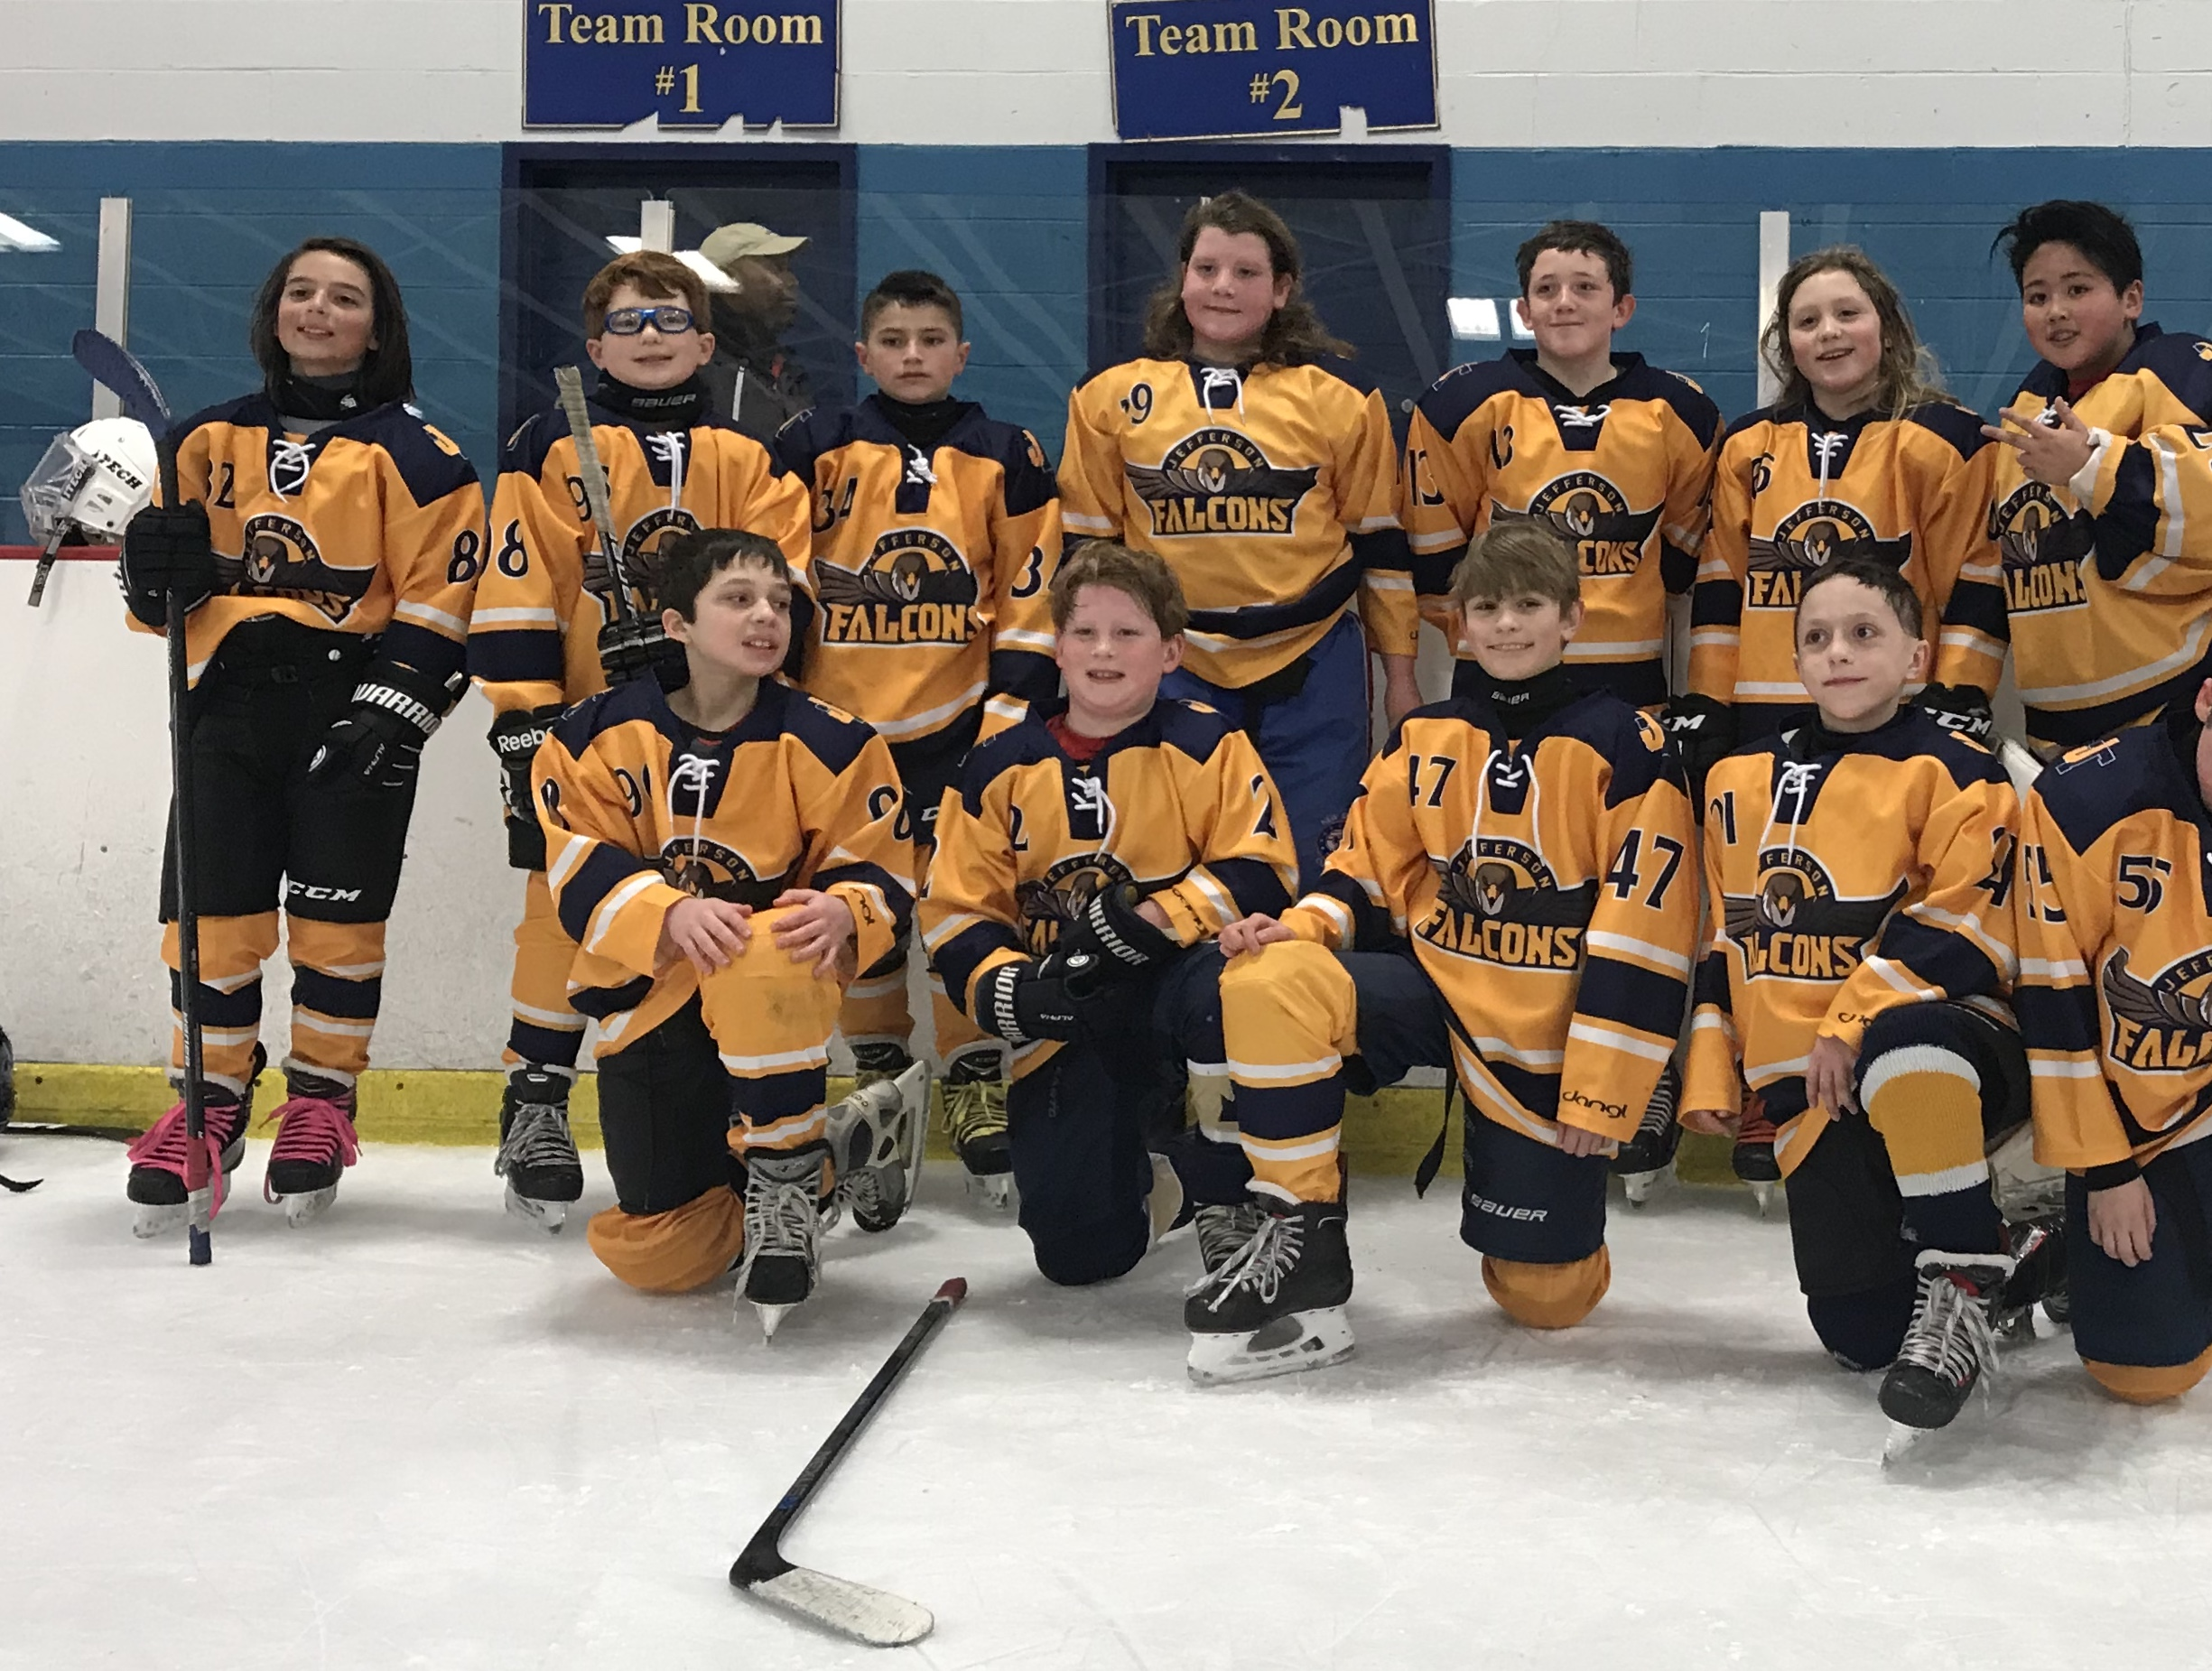 2018-2019 Peewee Division B 2nd place